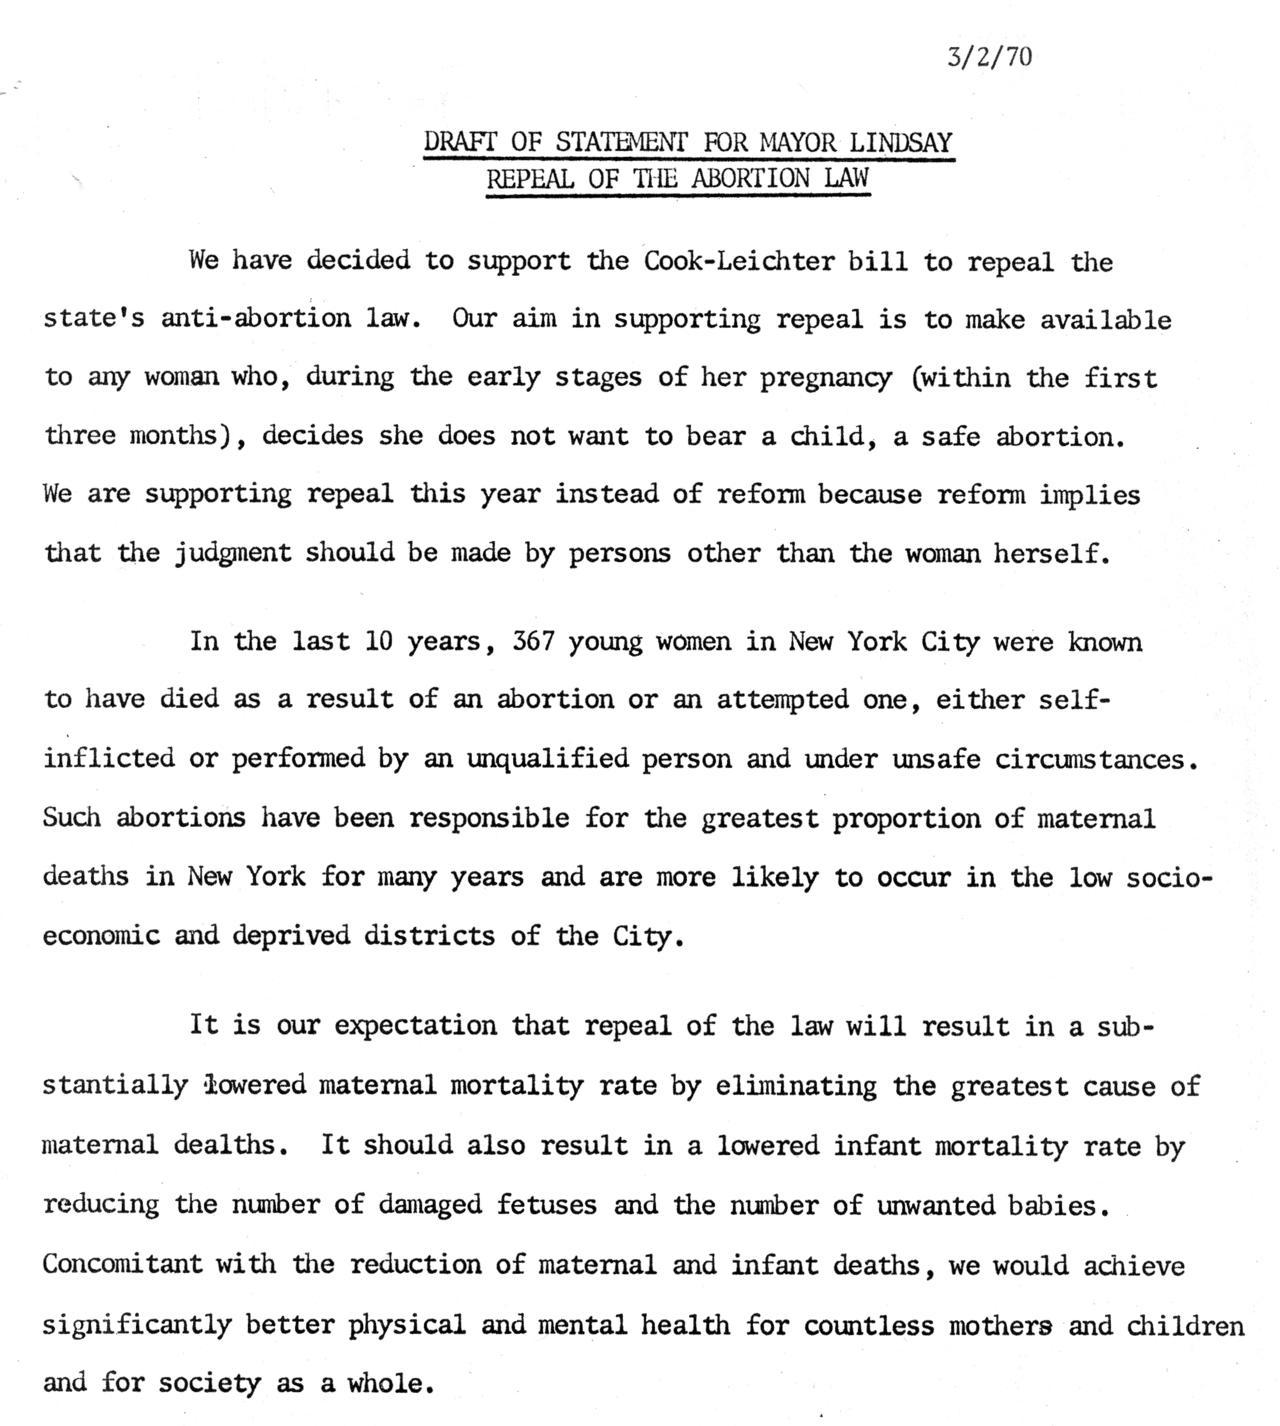 Draft of Statement by Joyce (de Terra) Antler for Mayor Lindsay, March 2, 1970